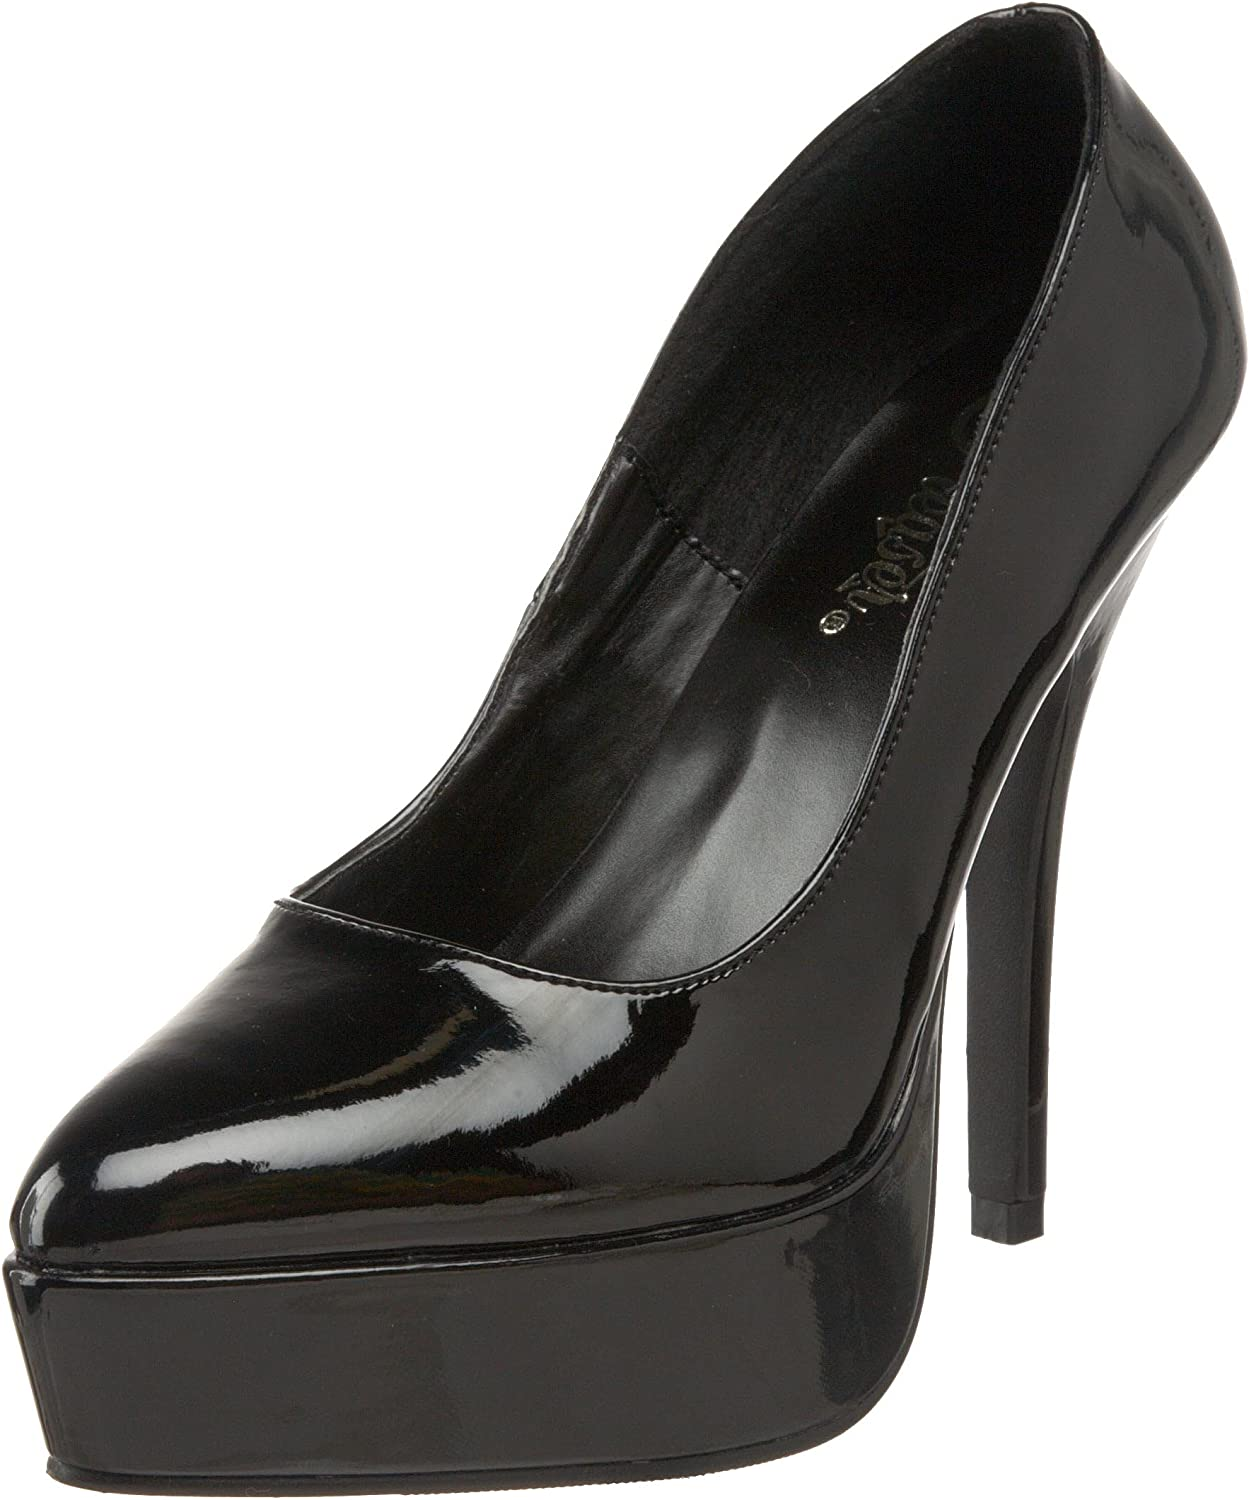 Devious Women's Indulge 520 Platform Pumps,Black,14 M